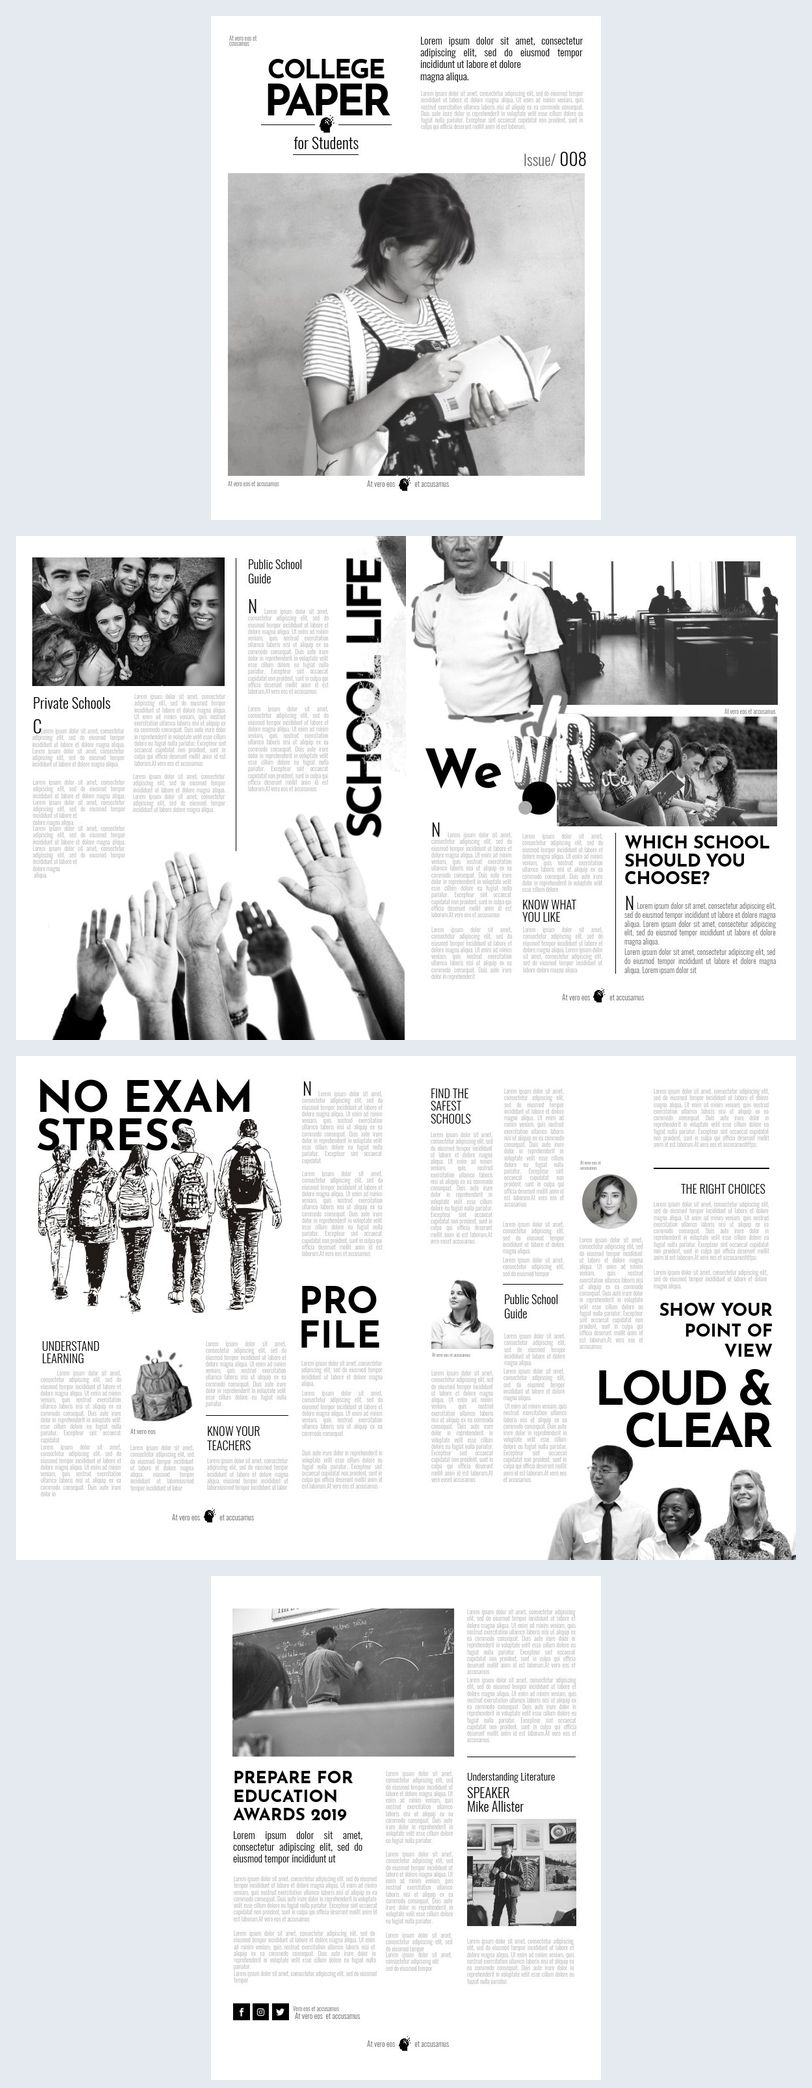 This college newspaper template is the perfect fit for any college looking to keep their students better informed.